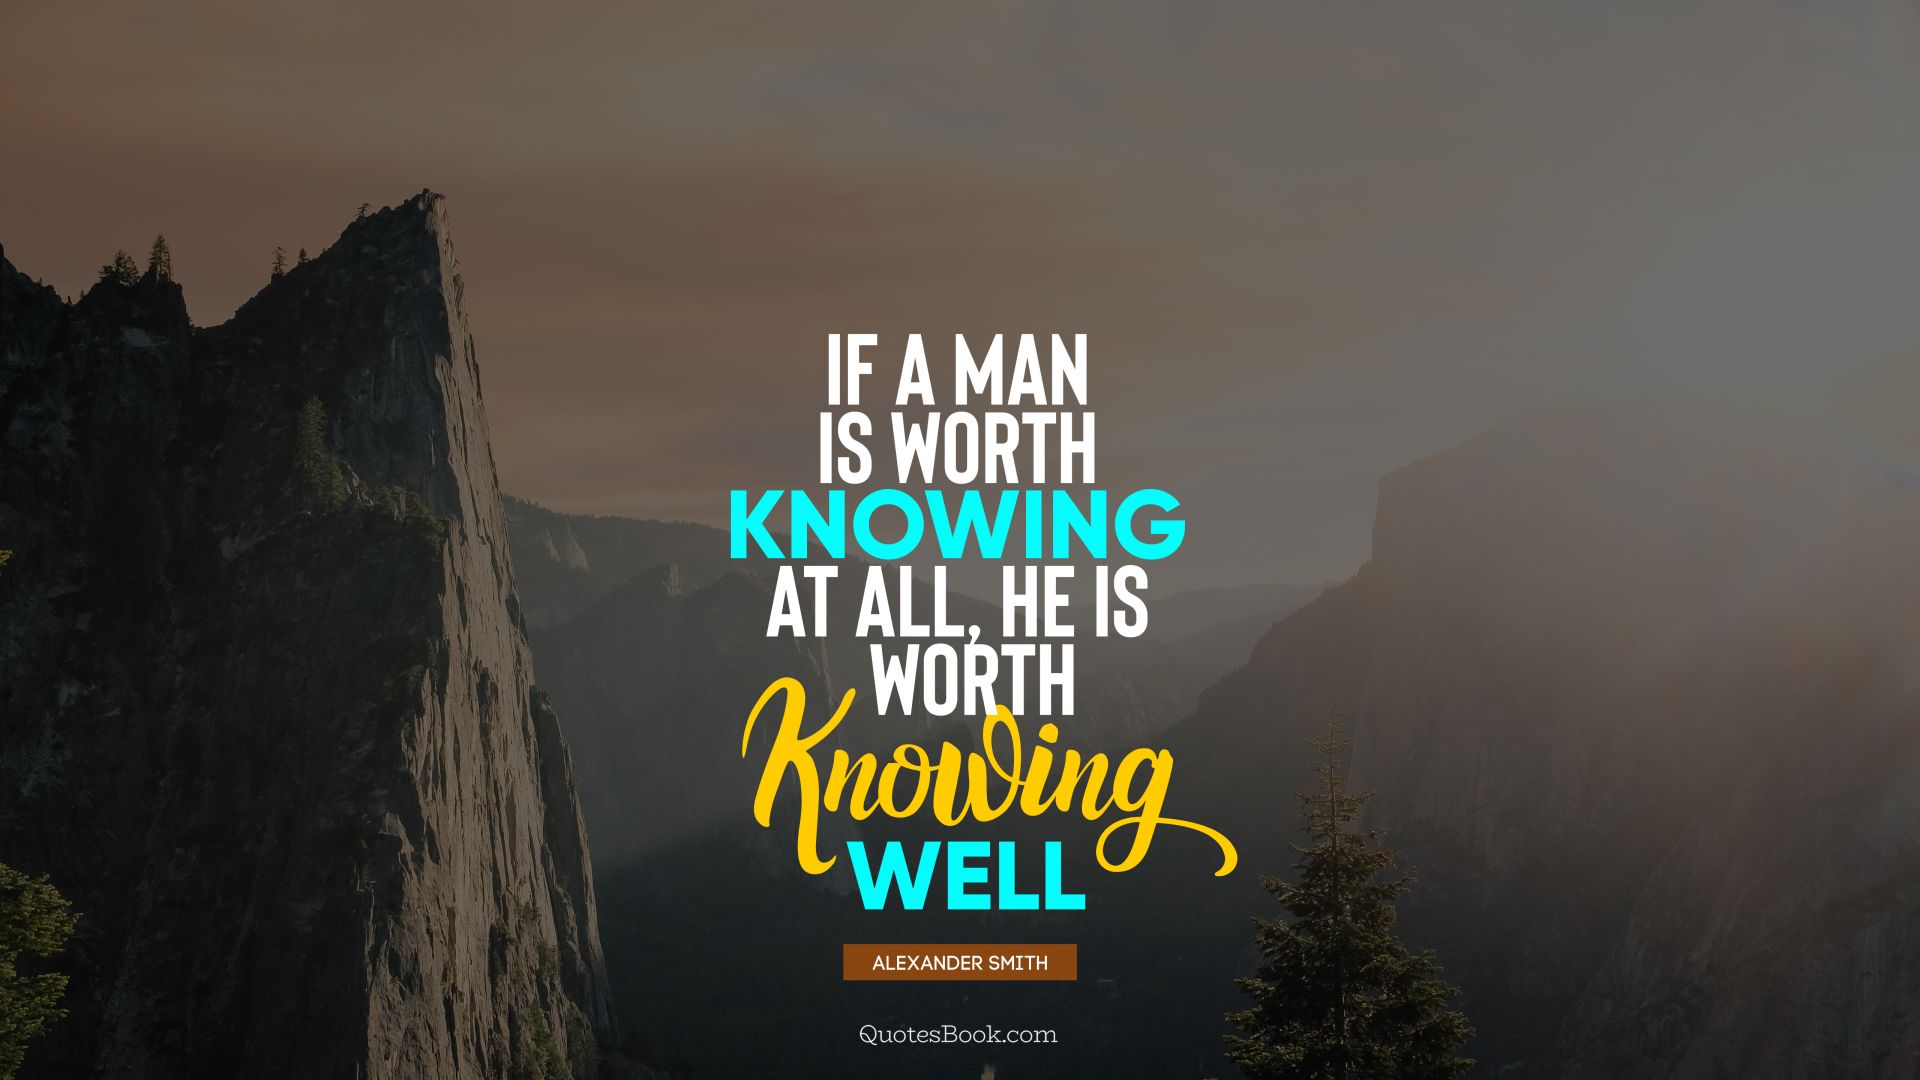 If a man is worth knowing at all, he is worth knowing well. - Quote by Alexander Smith